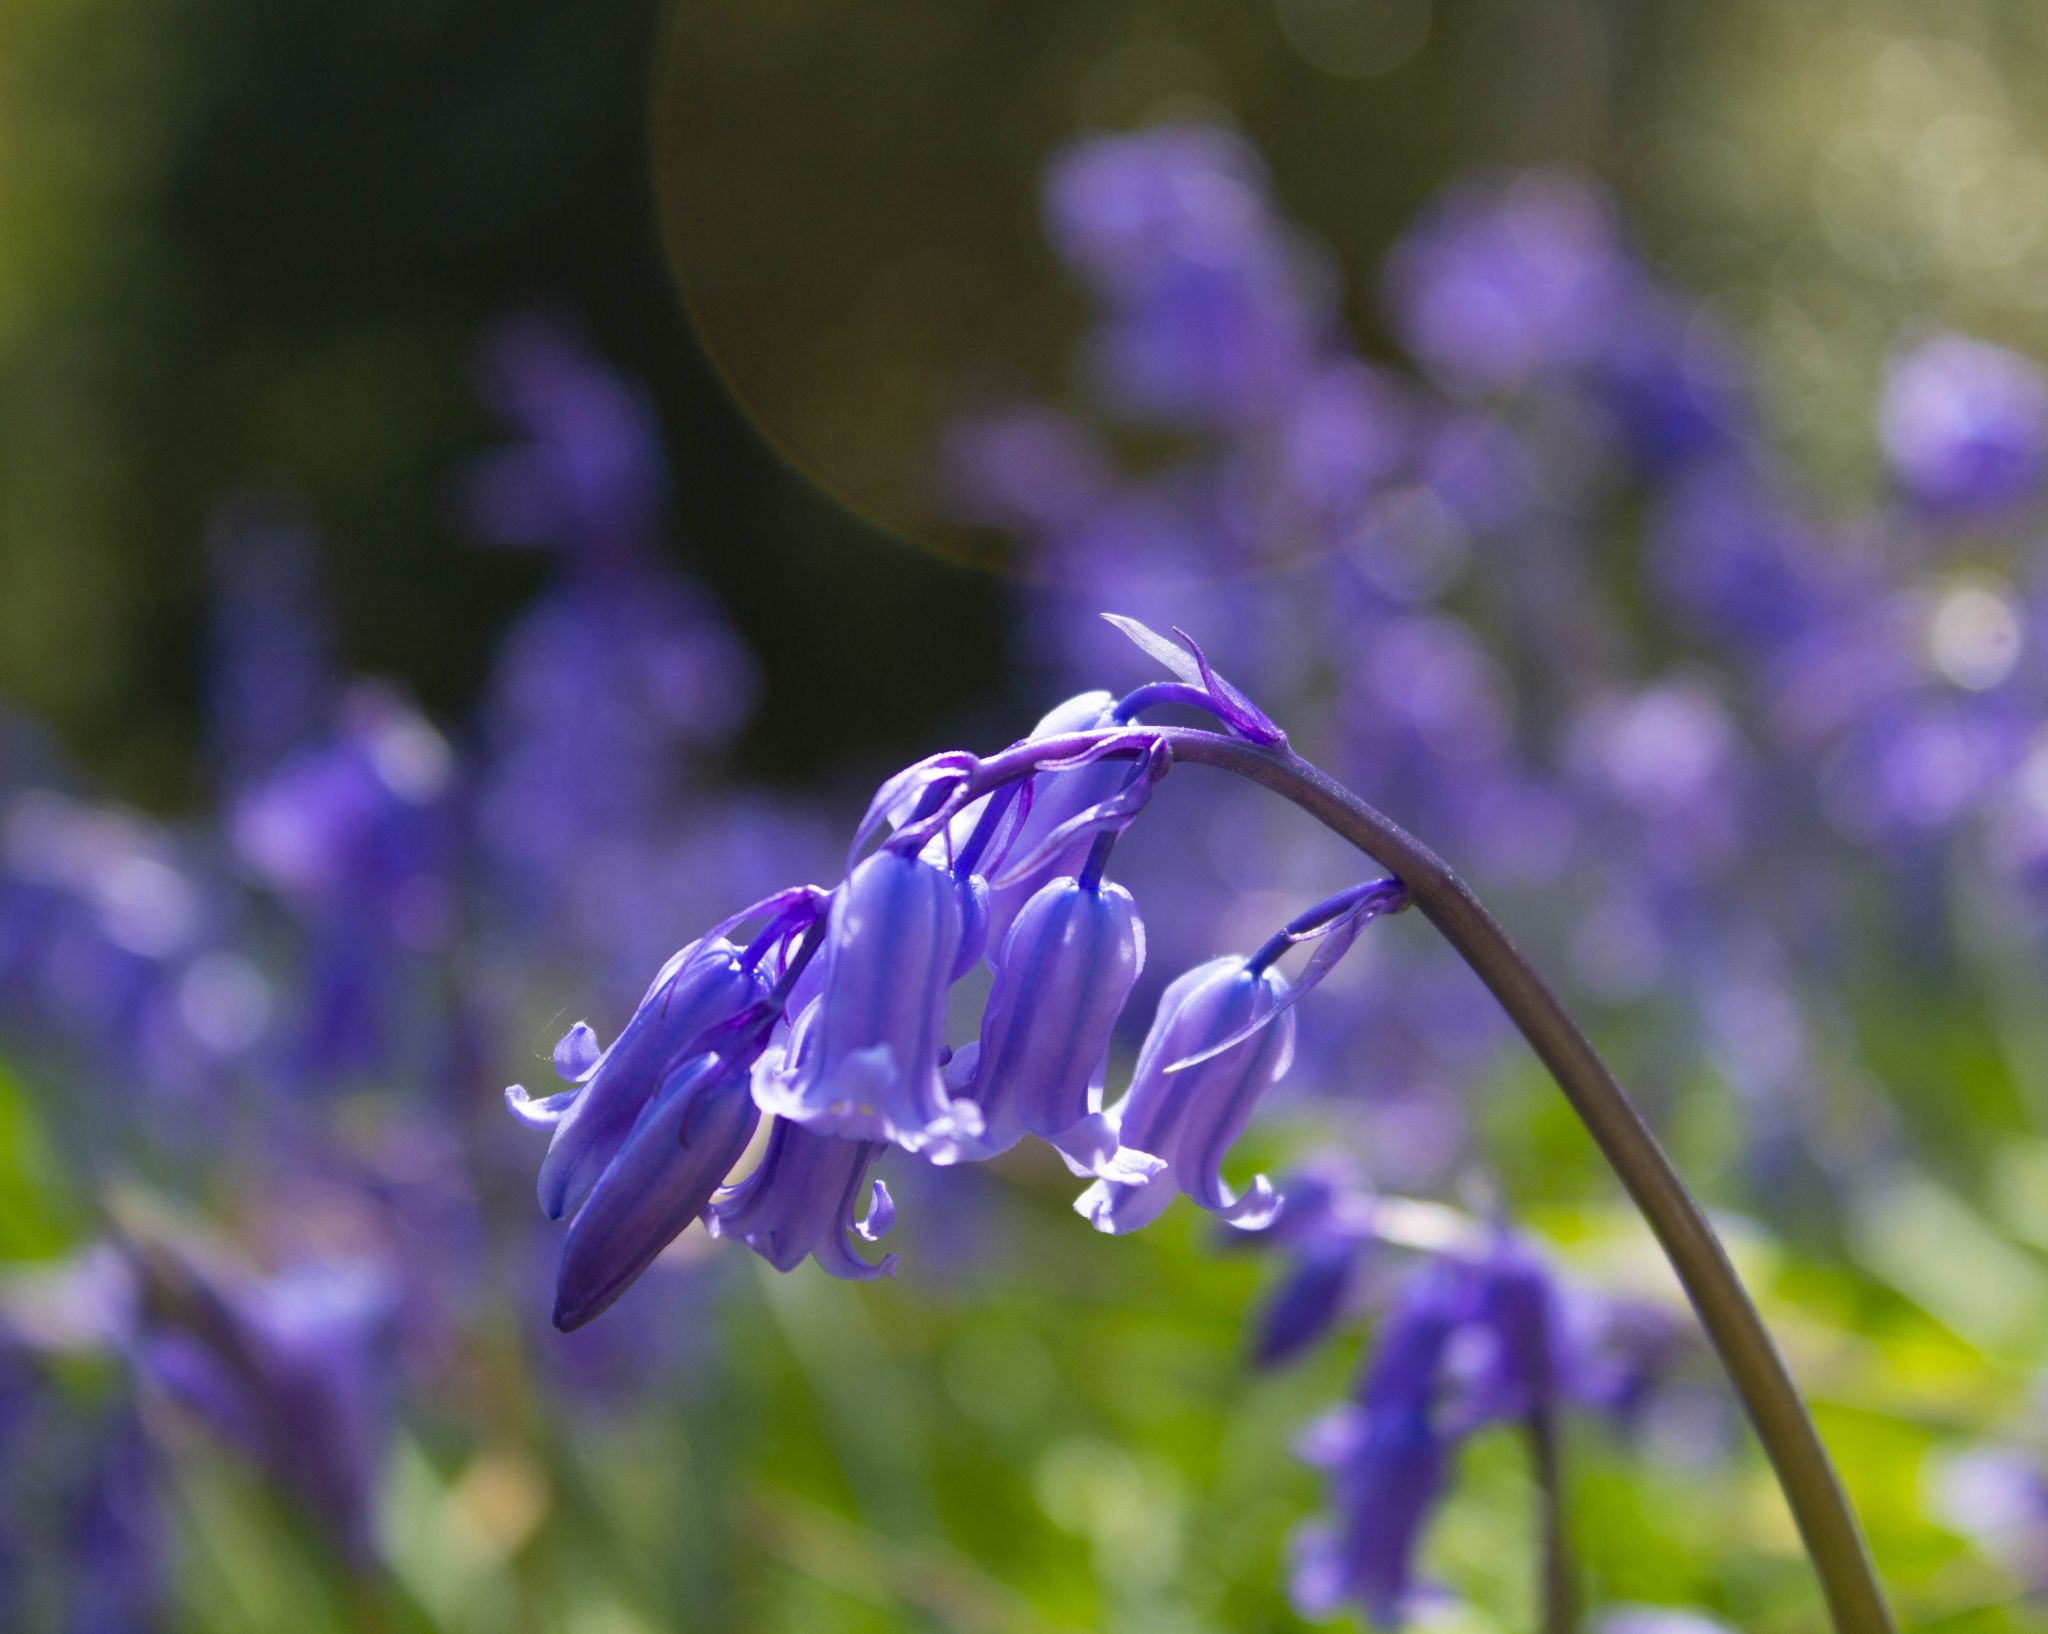 Keeping it simple: Bluebell image